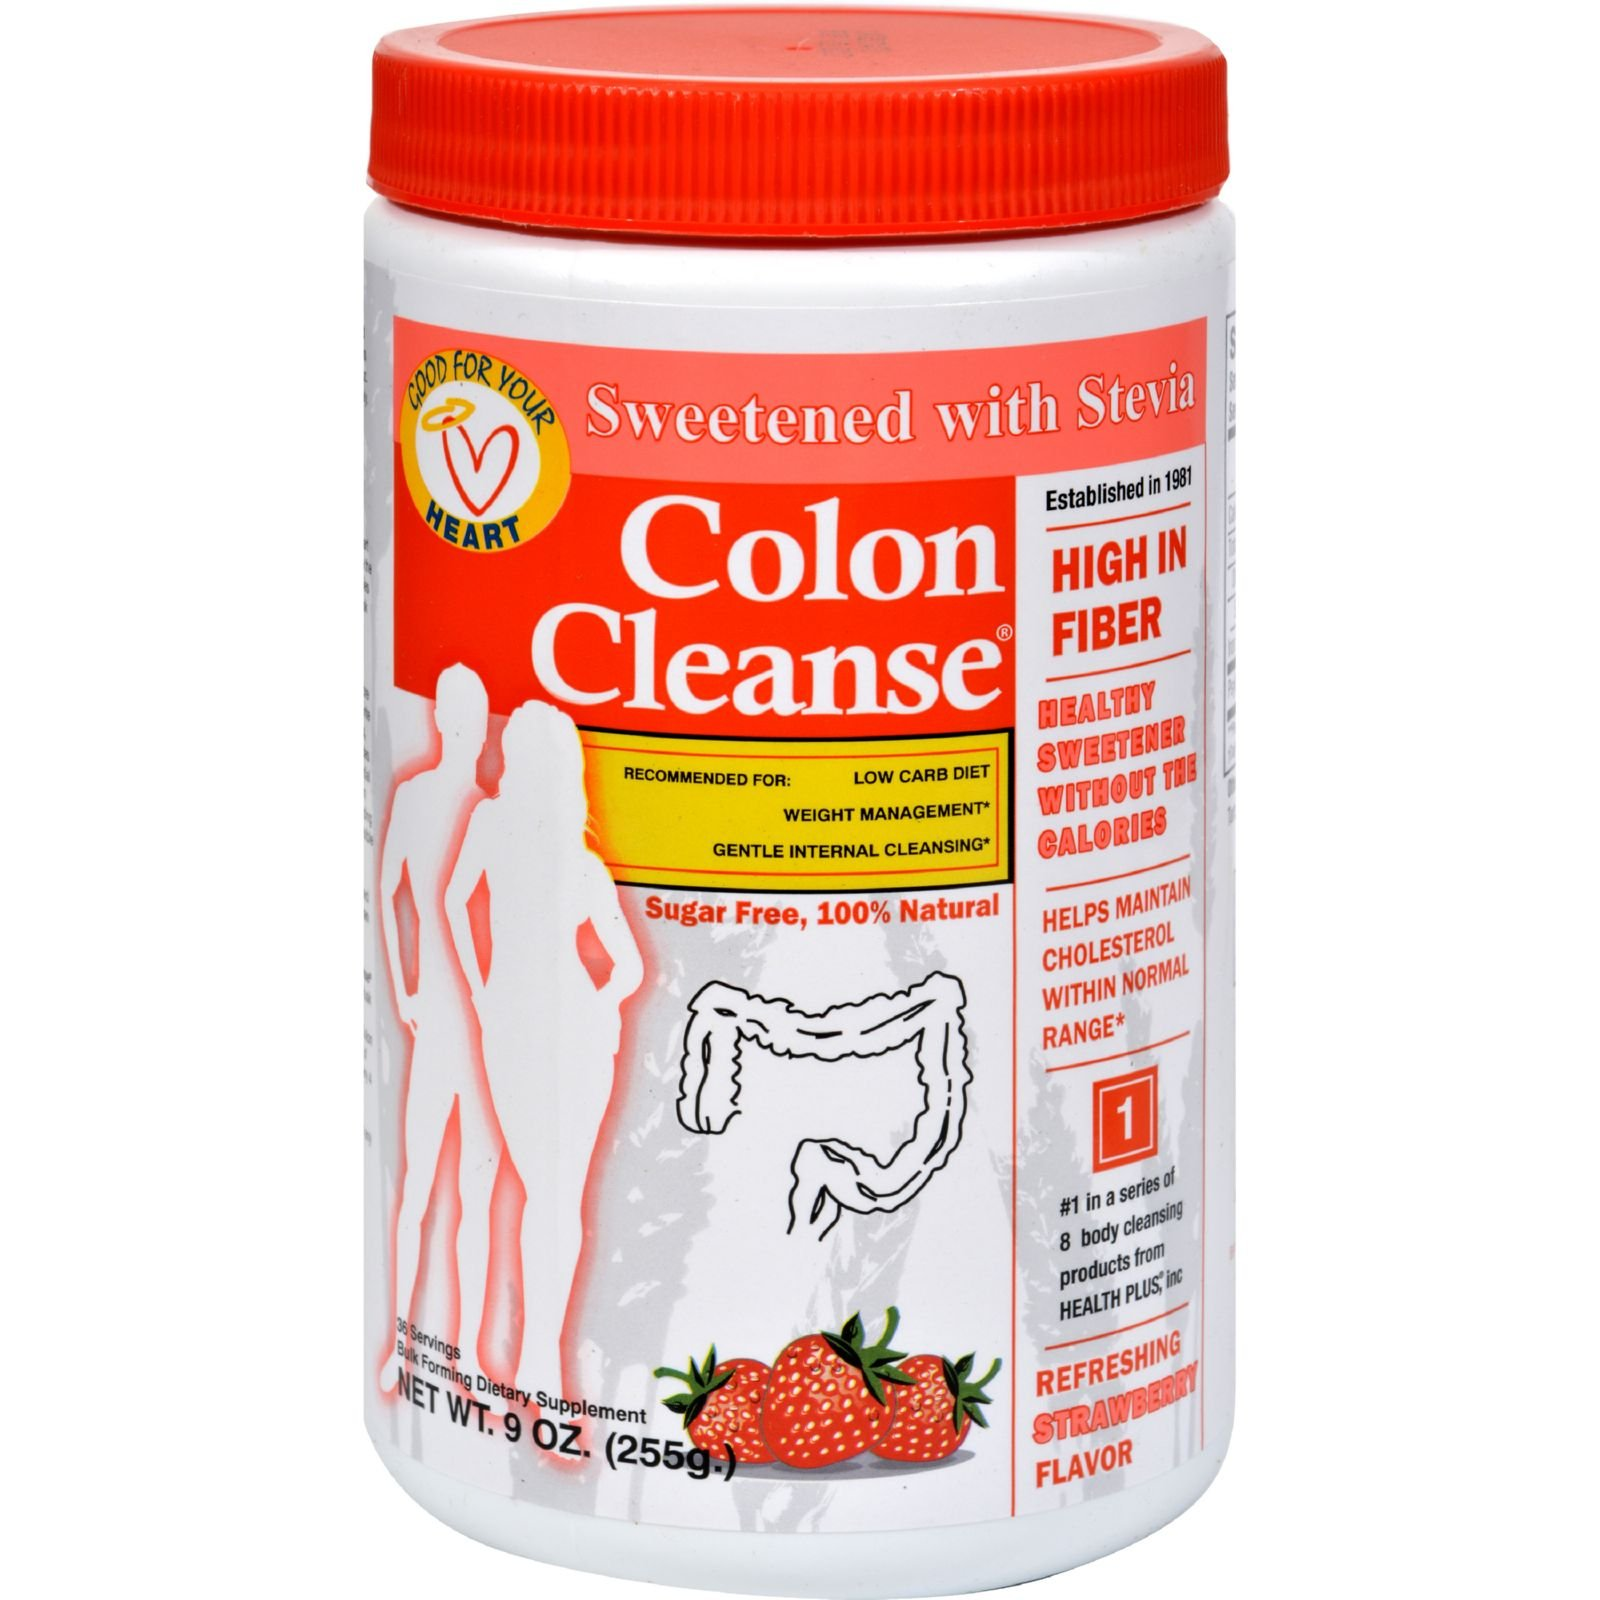 Health Plus Colon Cleanse - Strawberry Stevia - High In Fiber - For Weight Management - Natural - 9 oz (Pack of 4)